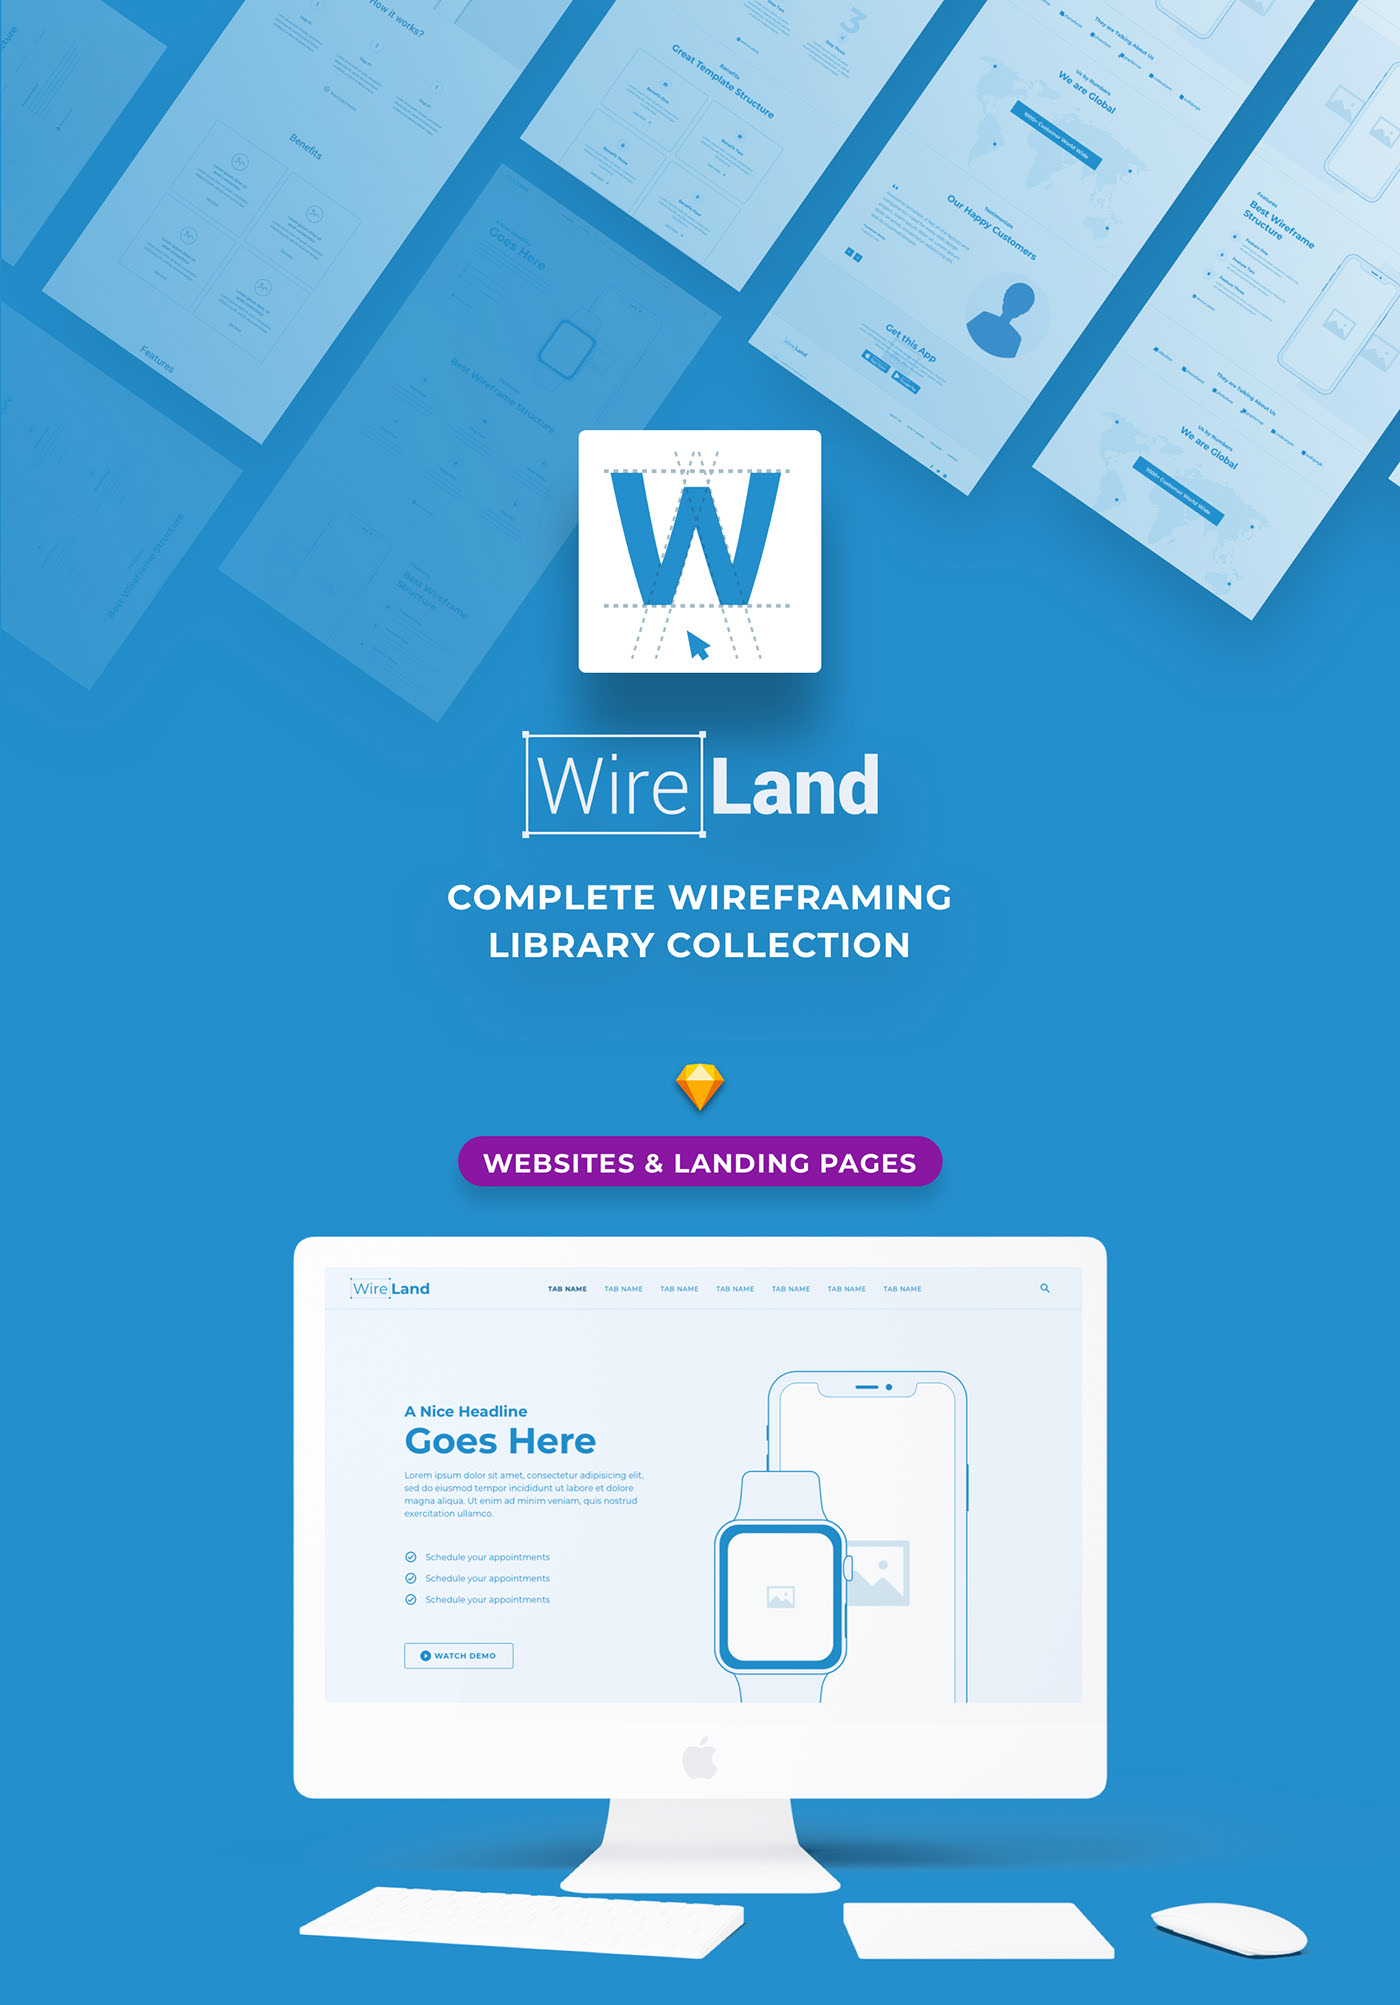 57926057728315.5f82276d383aa - Wireland - Wireframe Library for Web Design Projects - Sketch Template